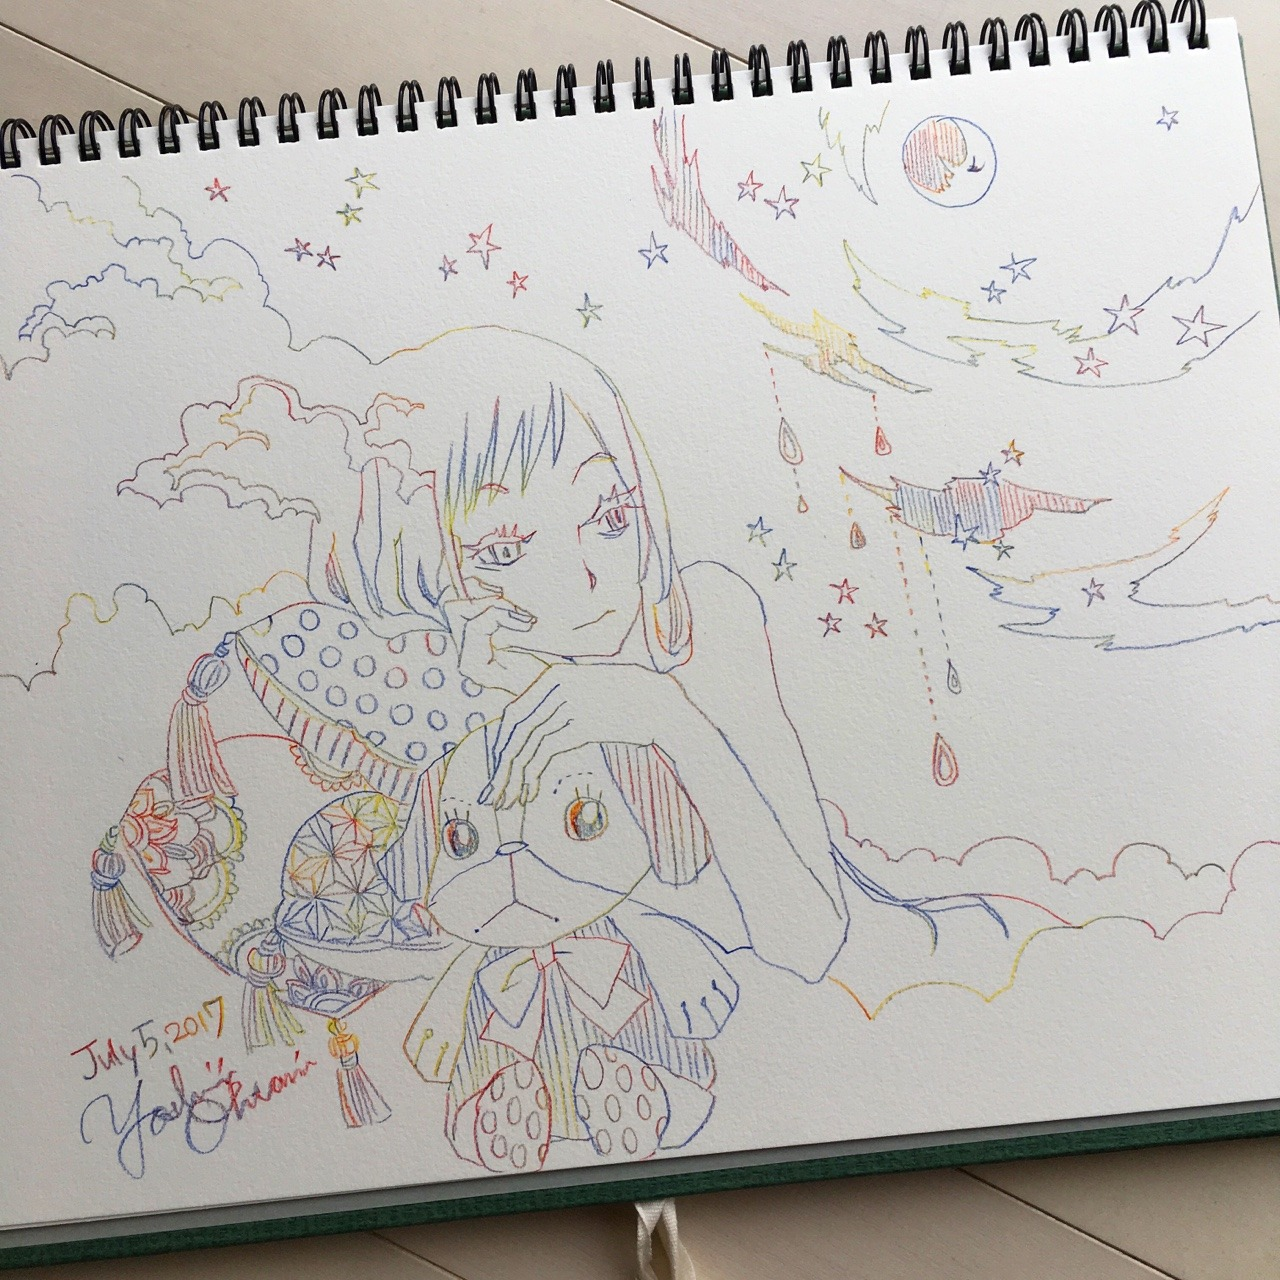 Drawn stare scribble 2017 Scribble sky July Today's